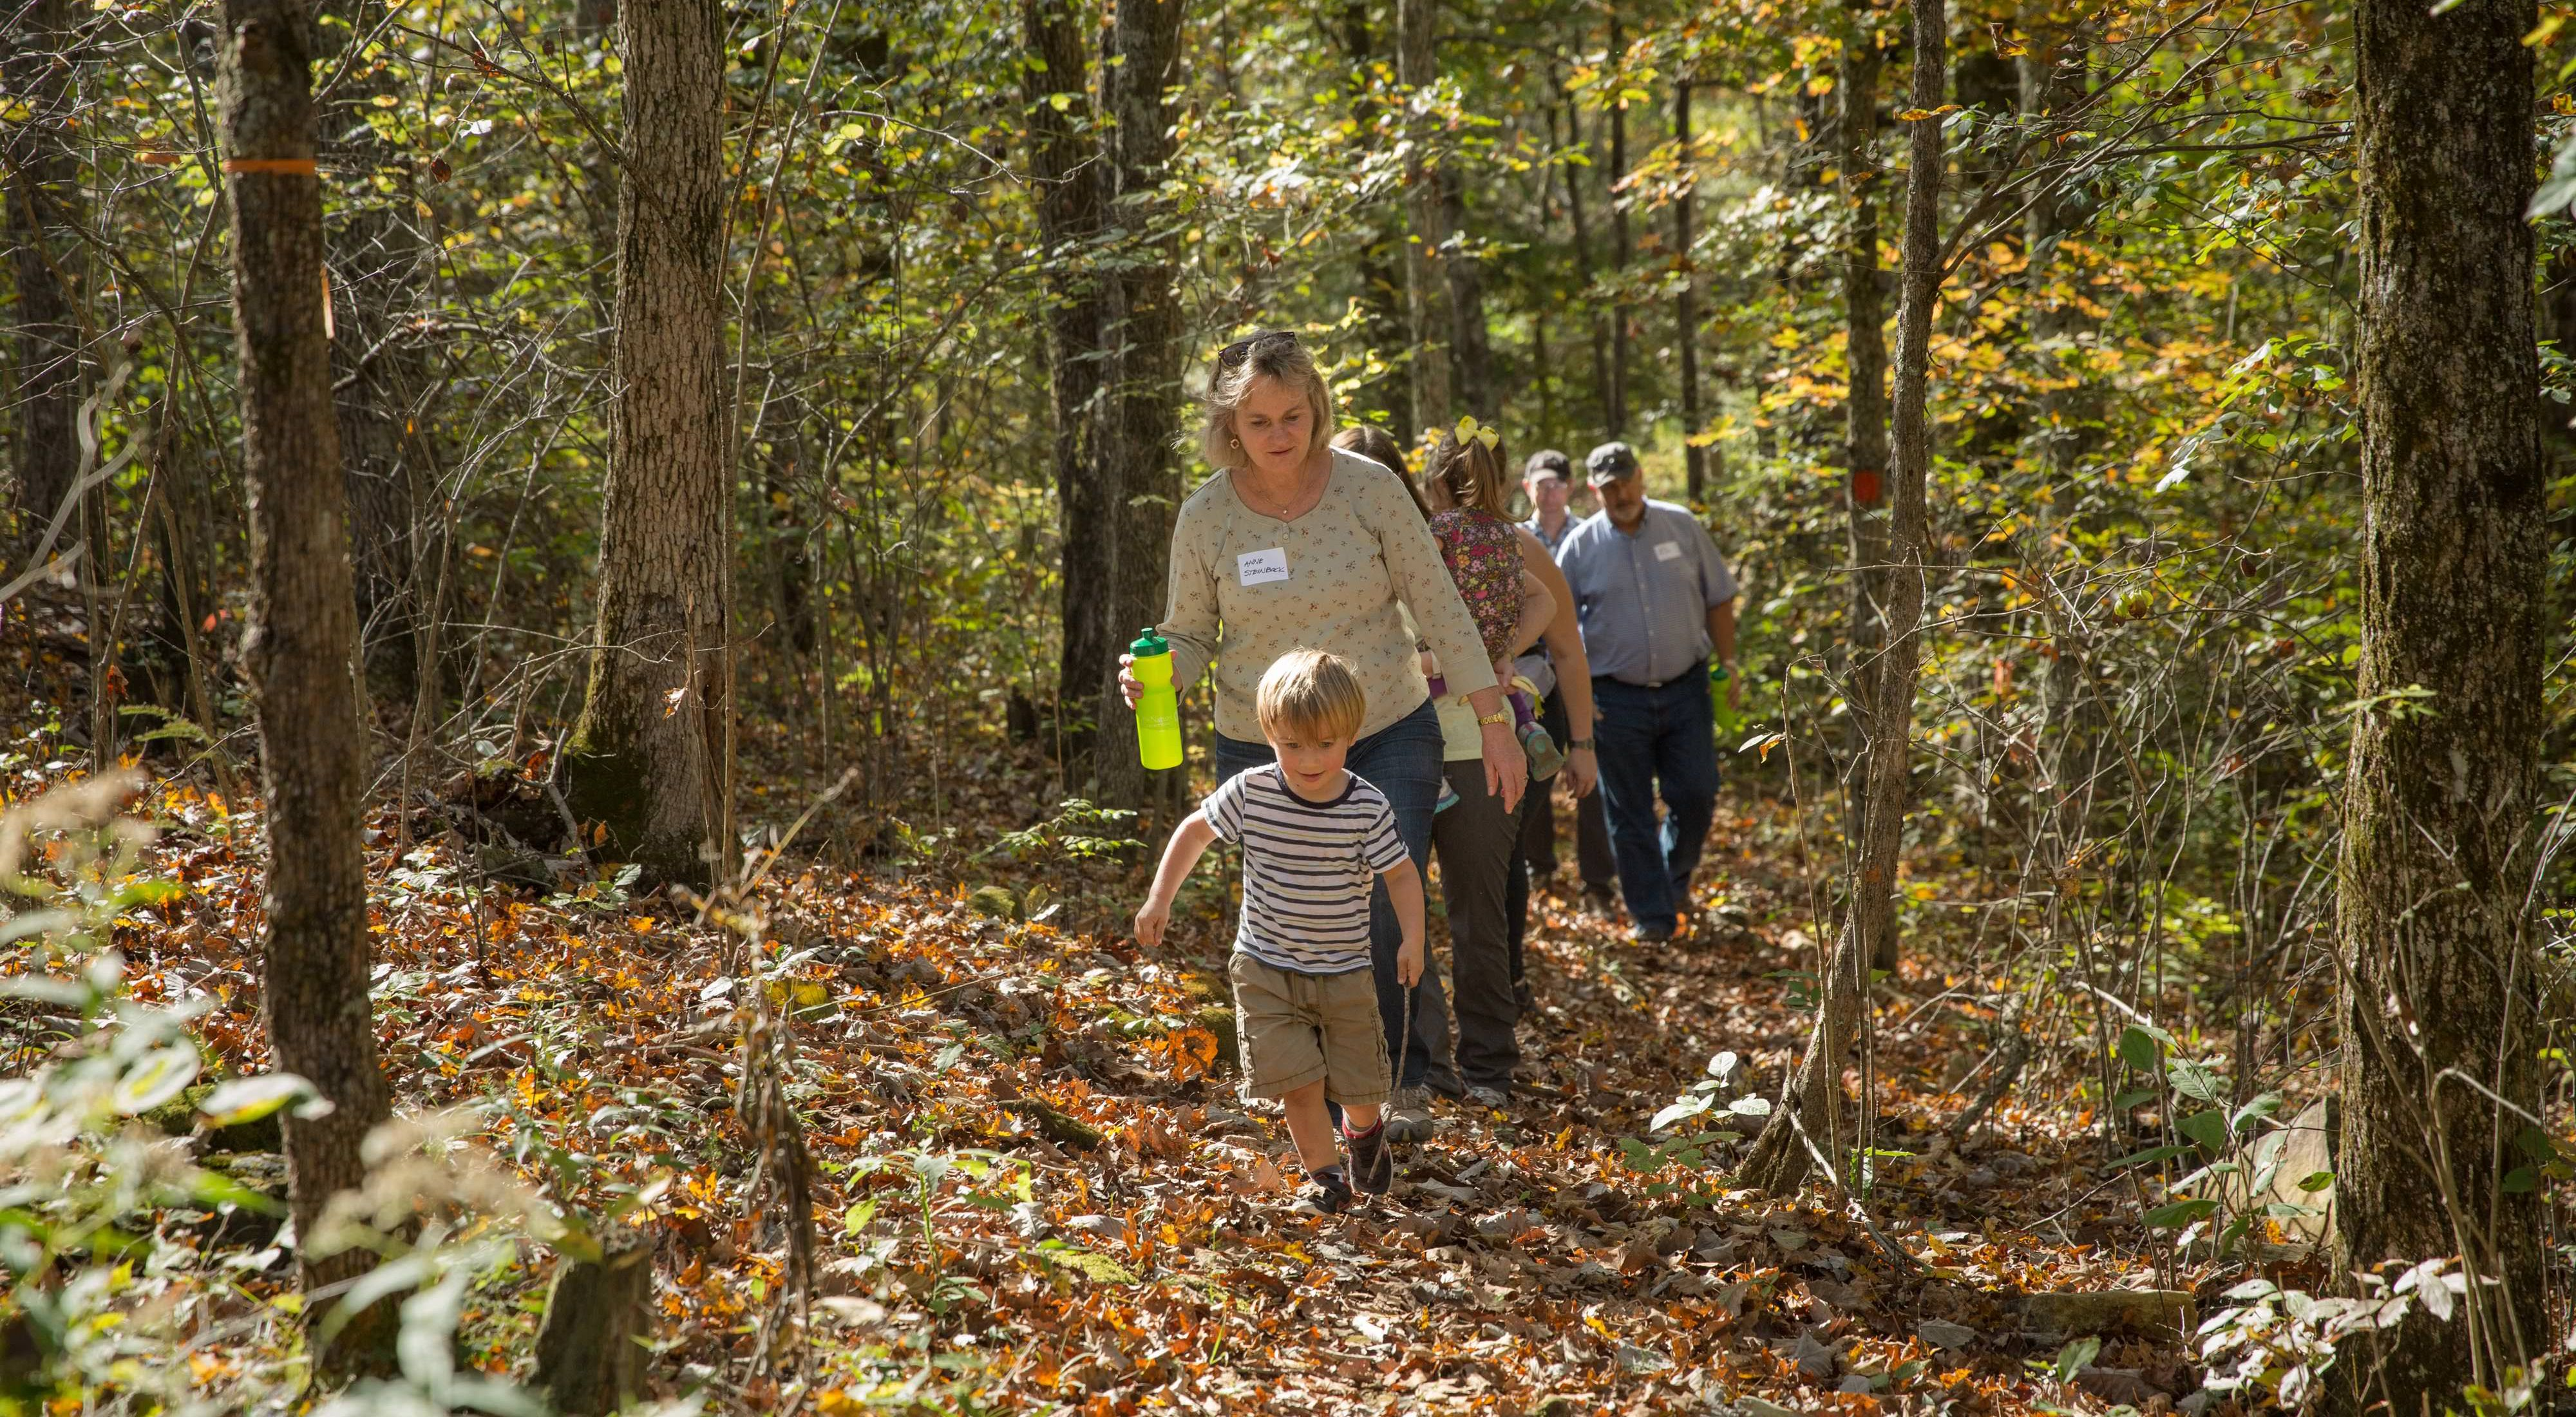 Led by a child, three people hike up a leafy trail surrounded by forest.